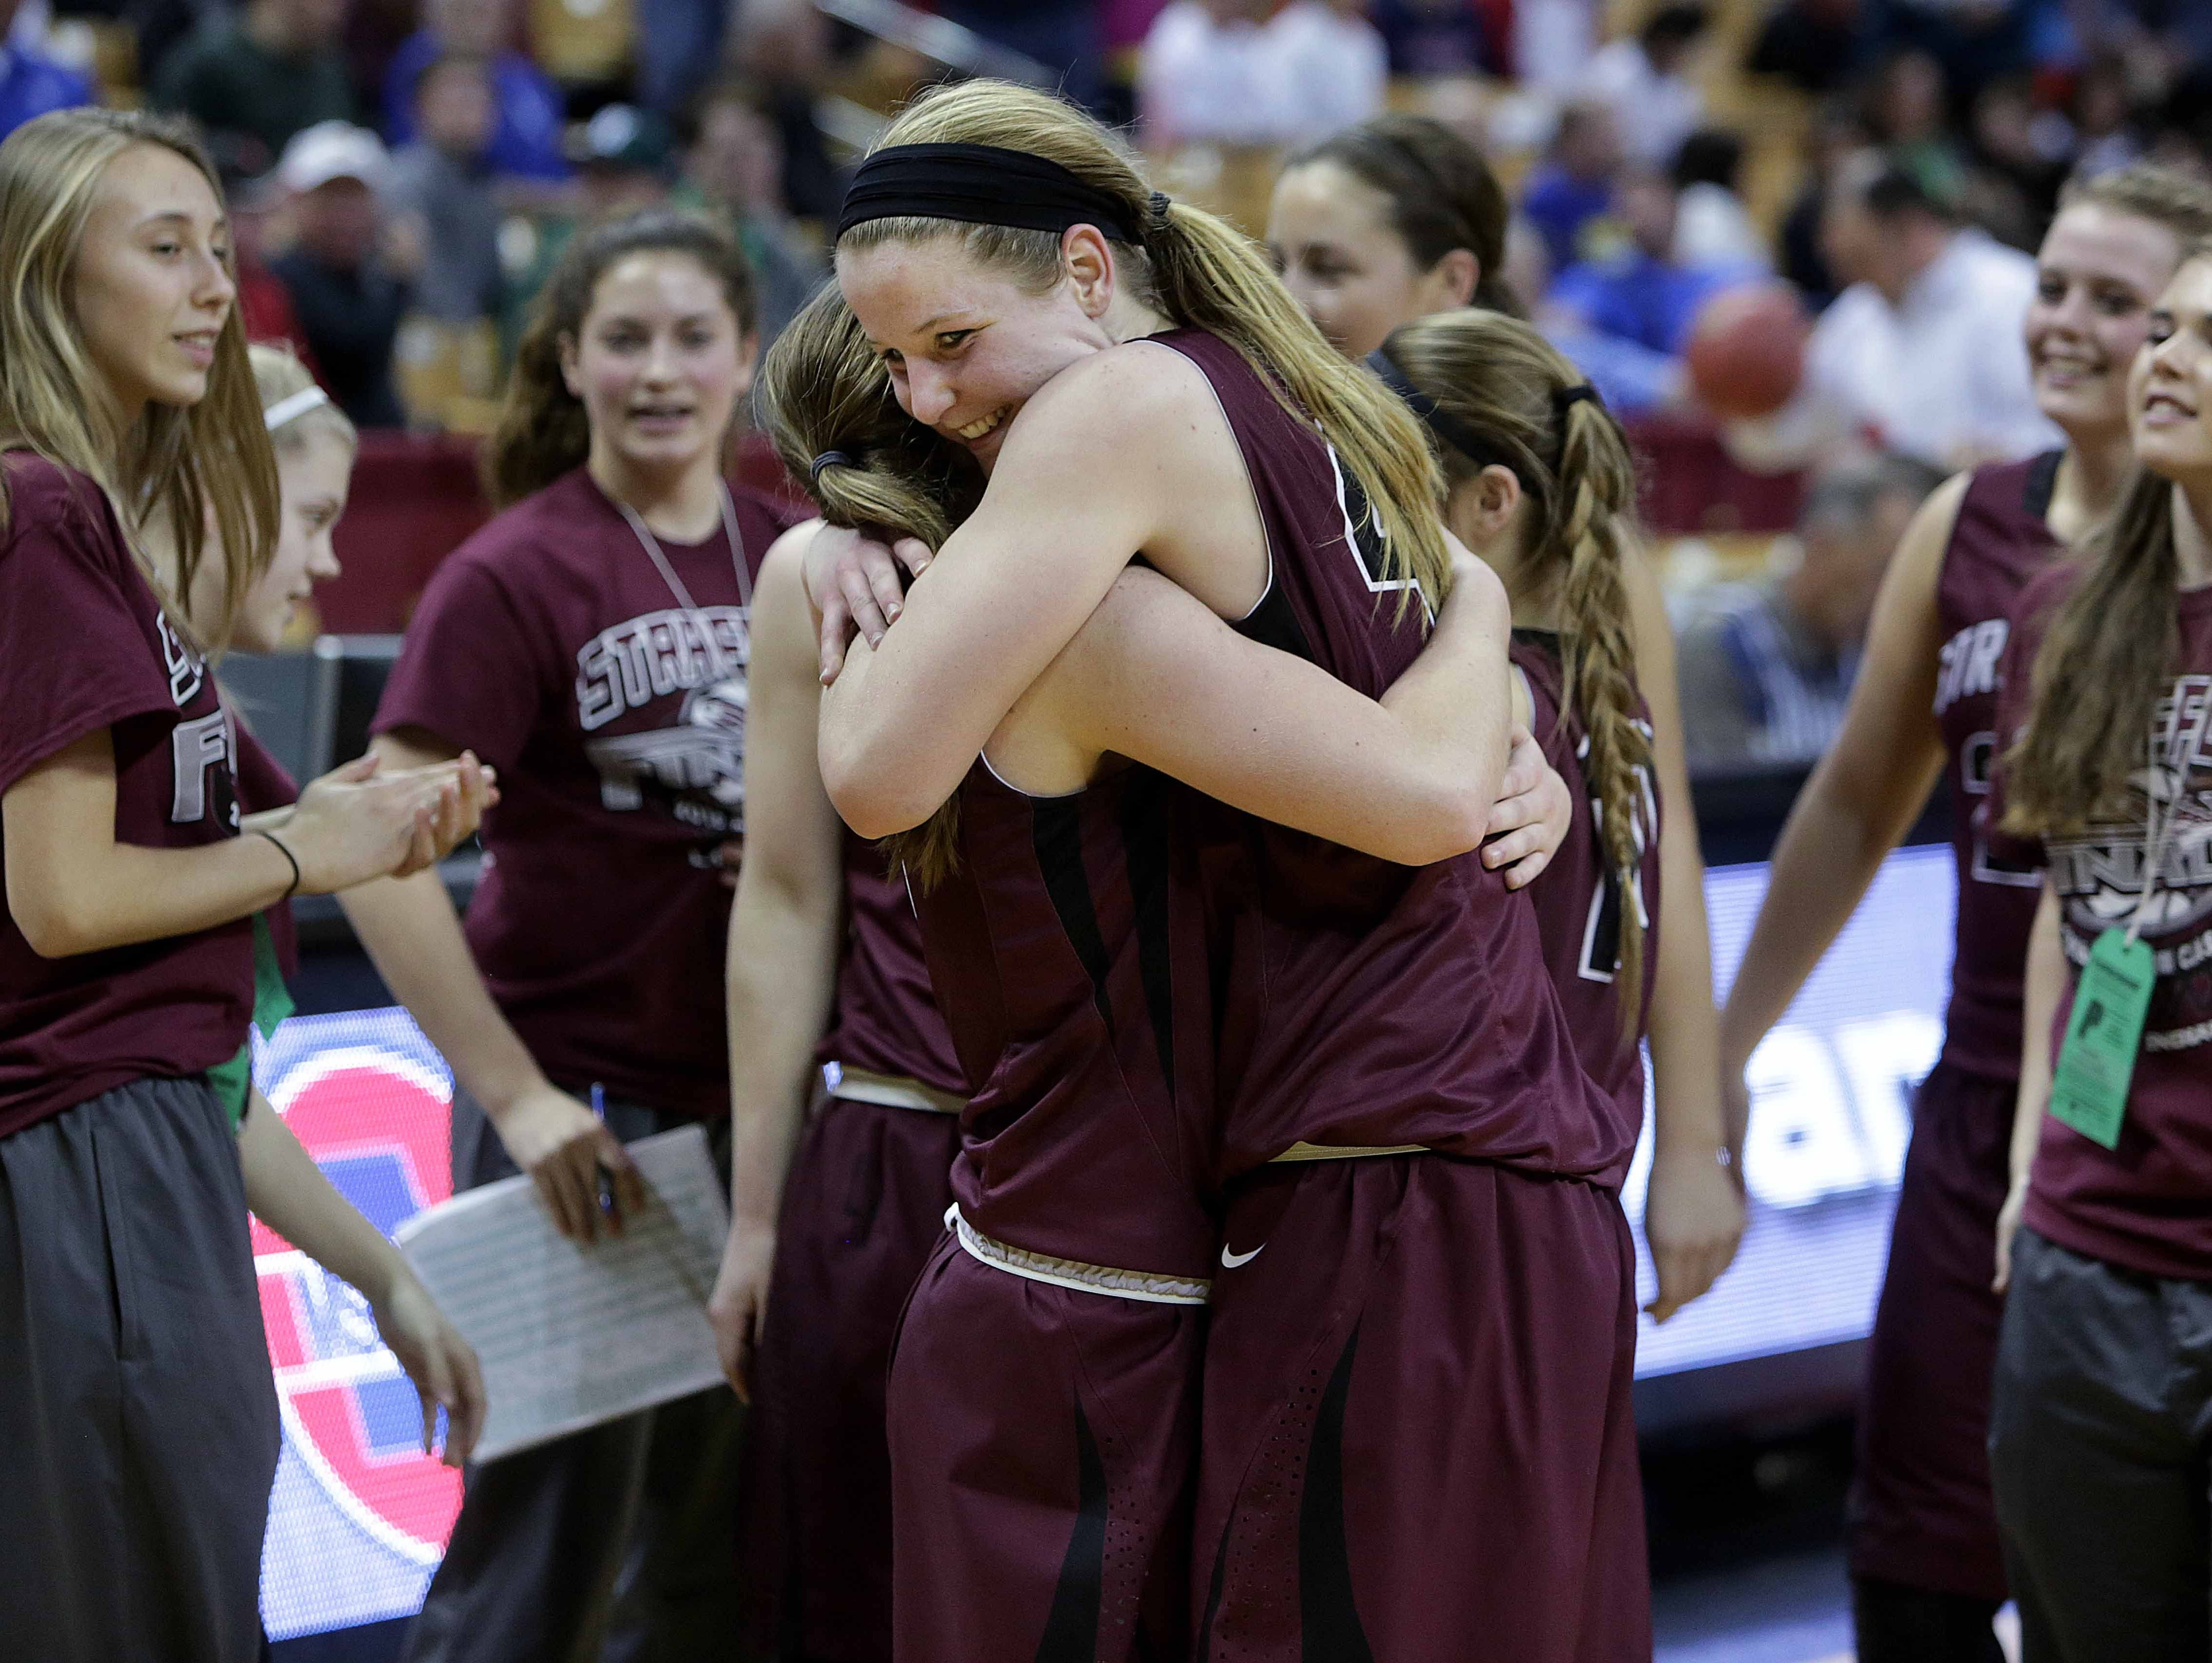 Hayley Frank of Strafford, right, hugs teammate Abby Oliver after the Indians defeated St. Pius X 48-37 in the 2016 Class 3 girls basketball semifinals on in Columbia.